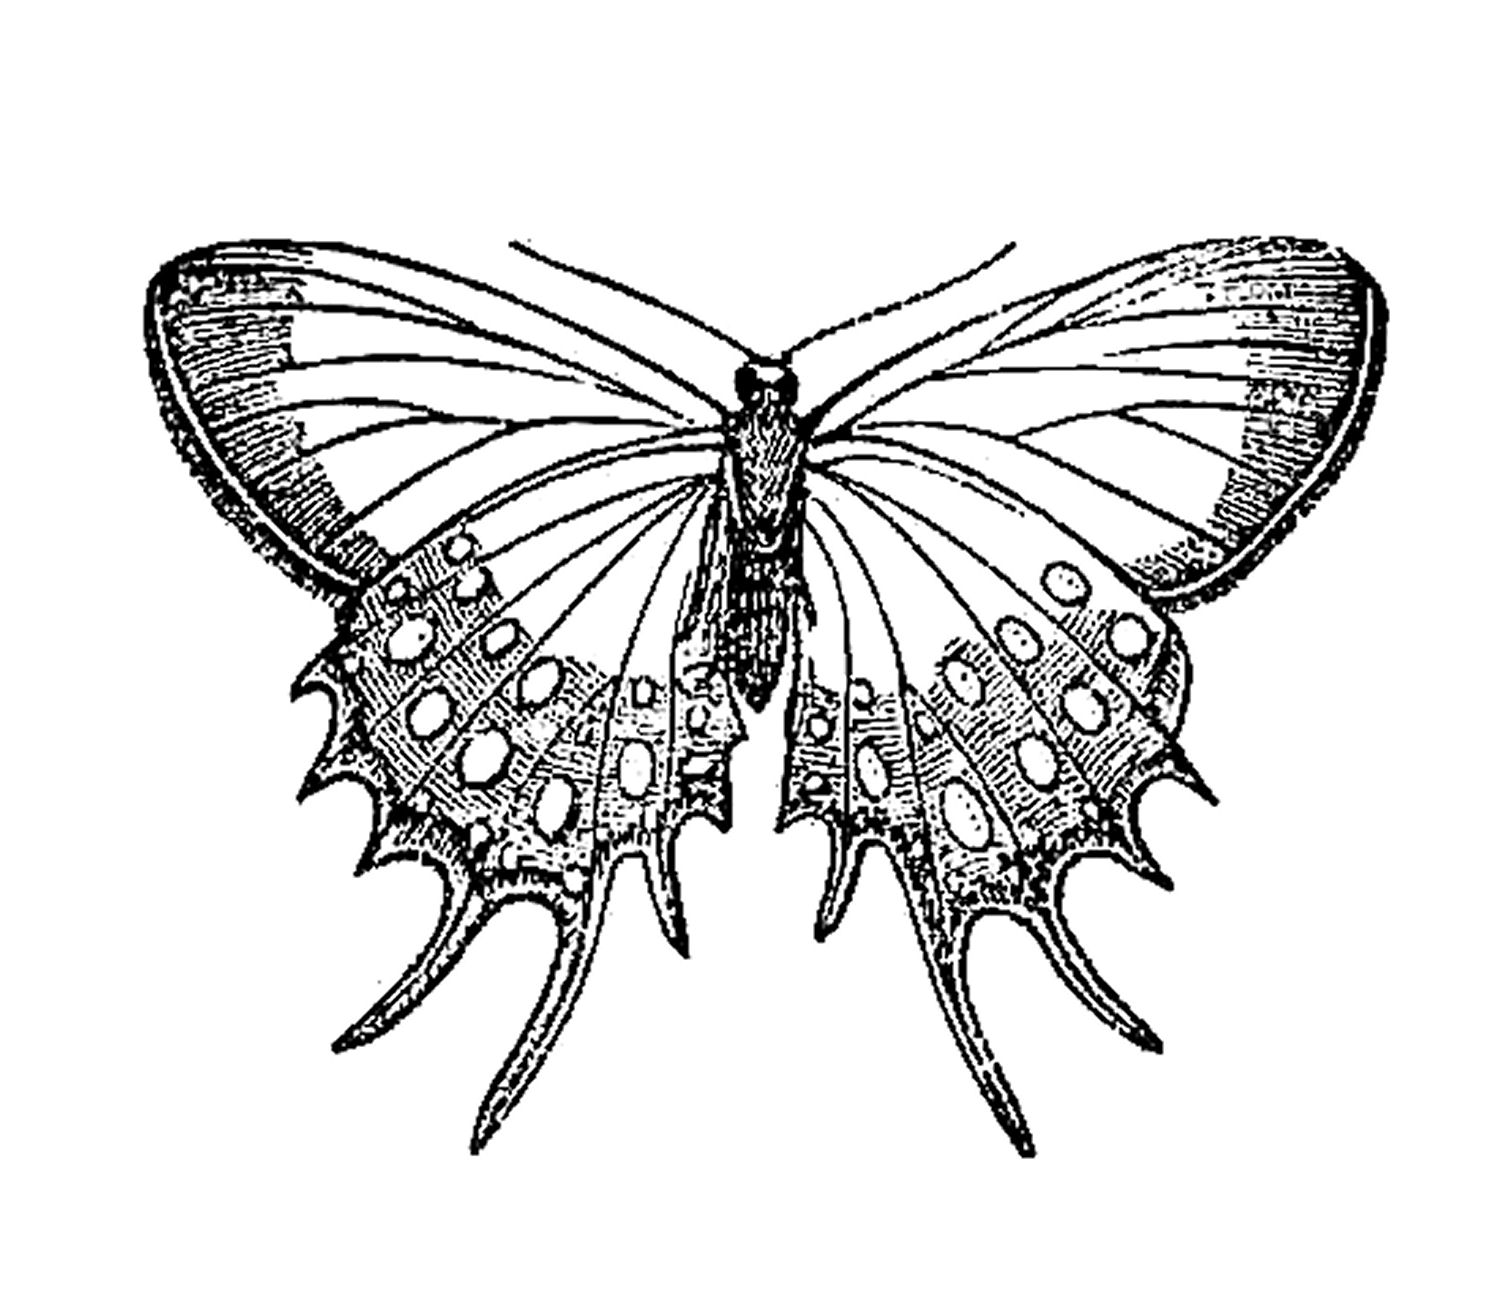 Vintage Insect Clip Art  Butterfly Graphic Design From Natural History